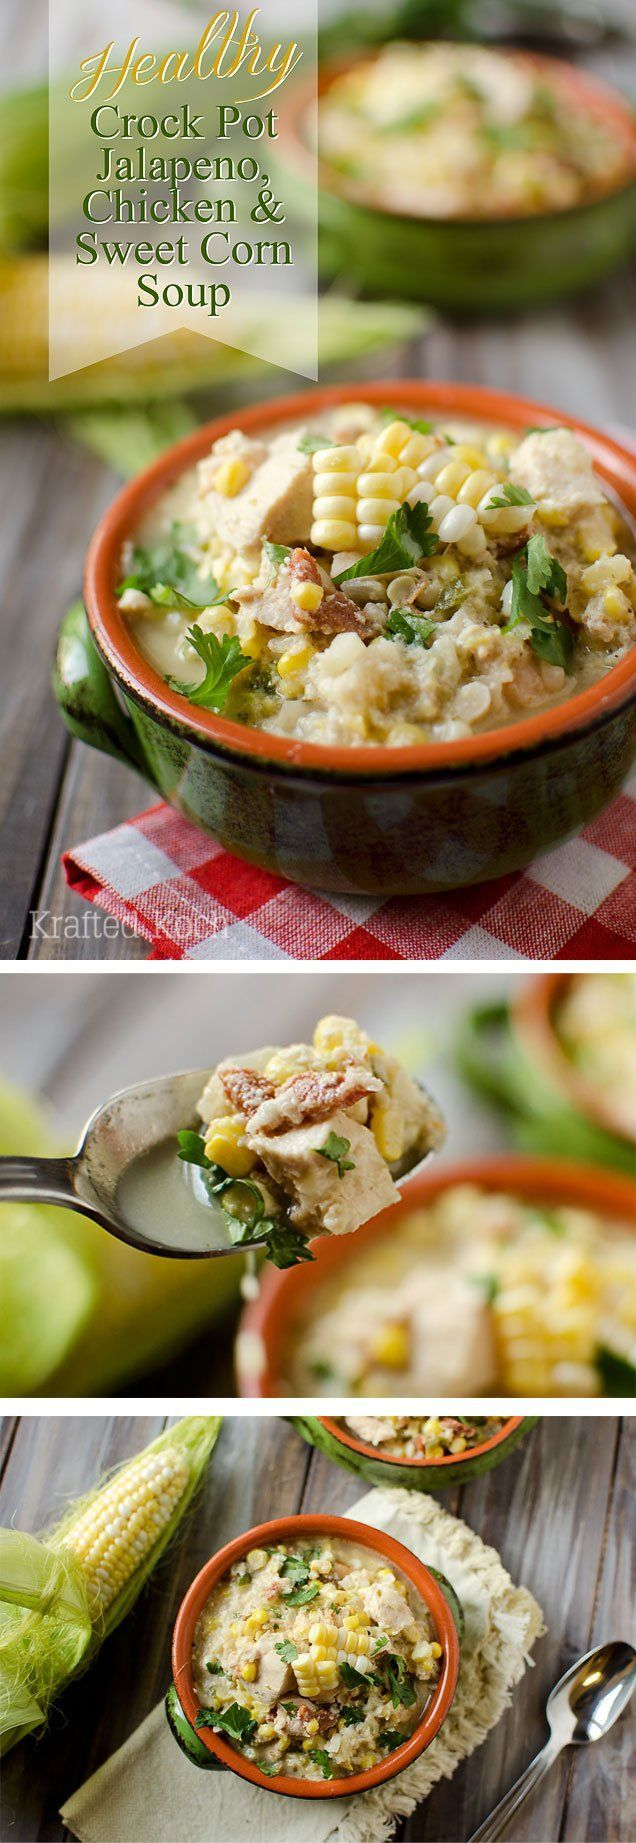 17 best images about jalapeno dishes and desserts on for Best healthy chicken crock pot recipes